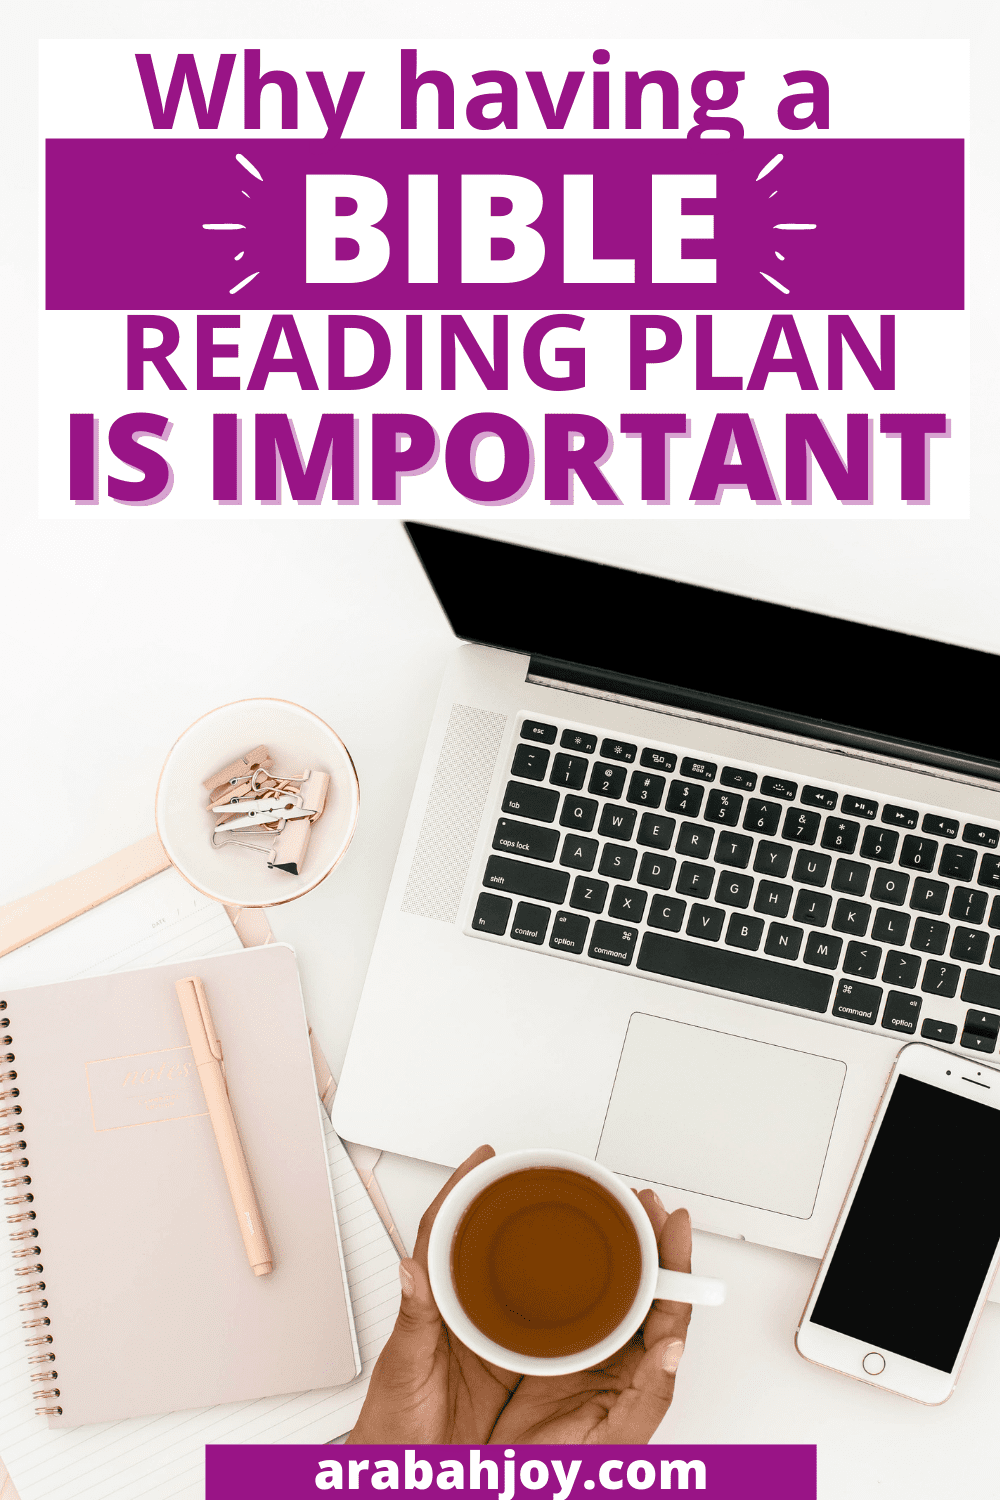 If you want to consistently spend time in God's word, having a bible reading plan can help! Here's Why Having a Bible Reading Plan is Important